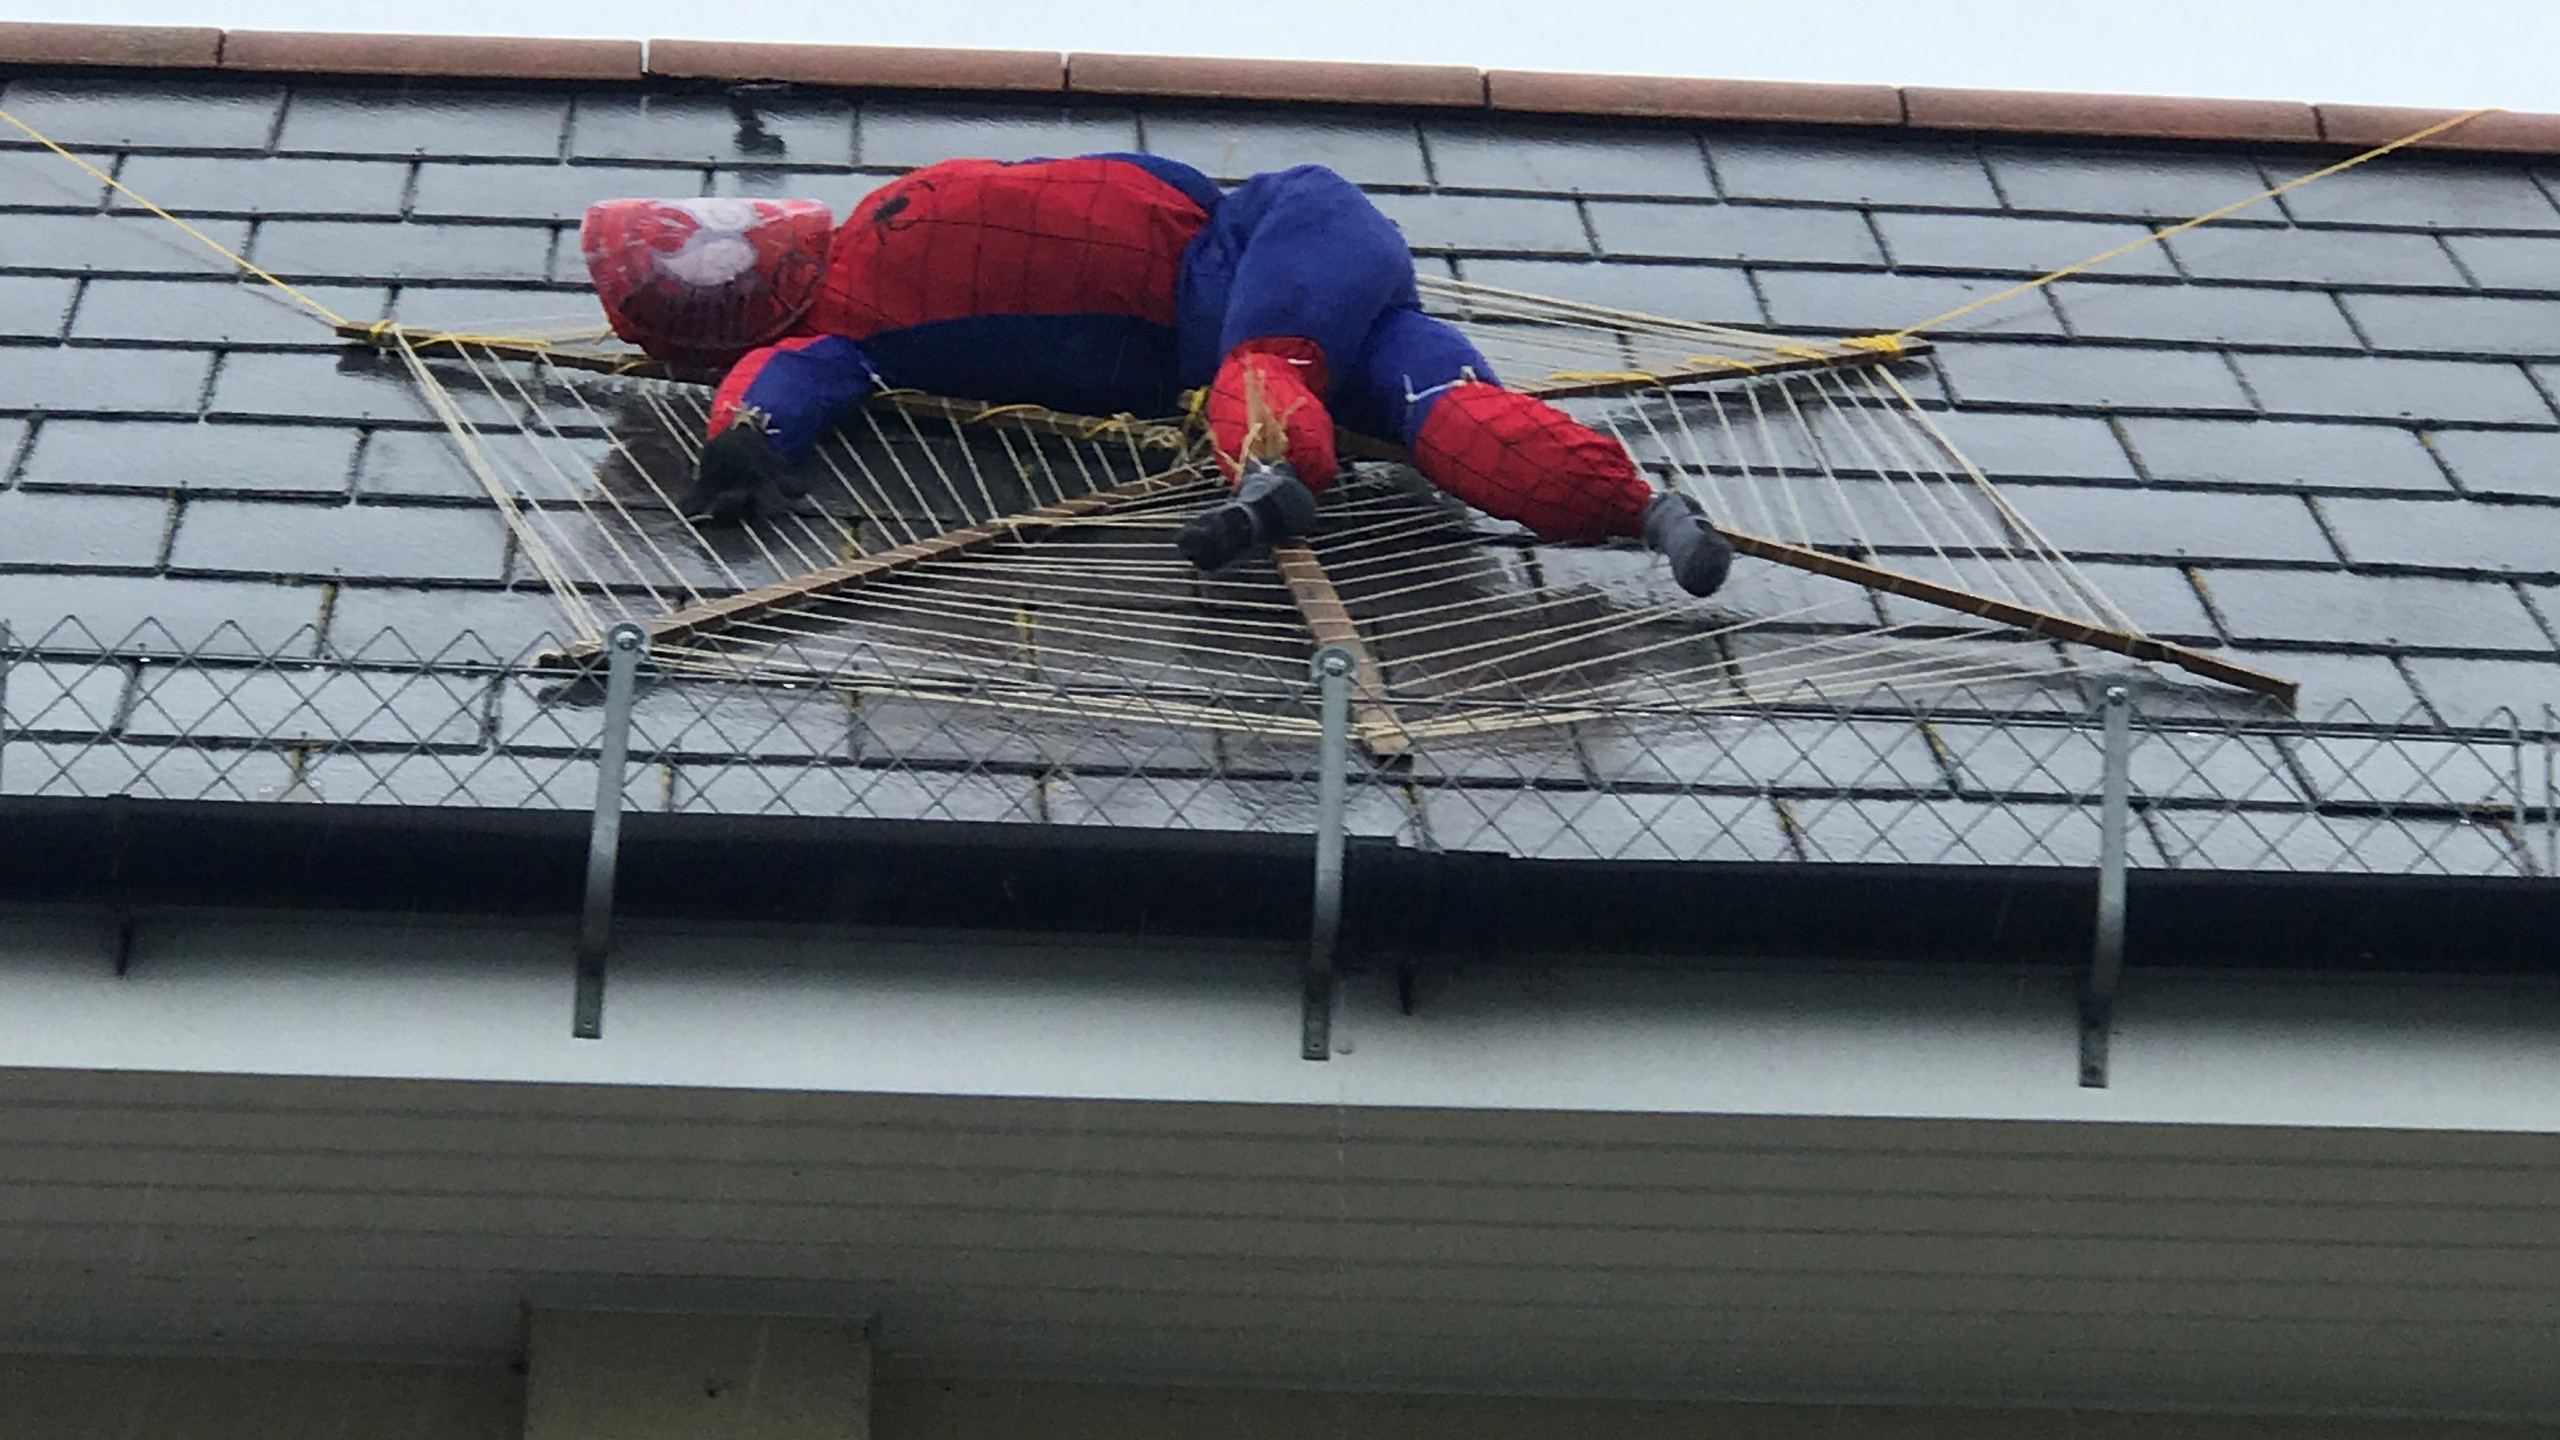 Spiderman on the Co-Op